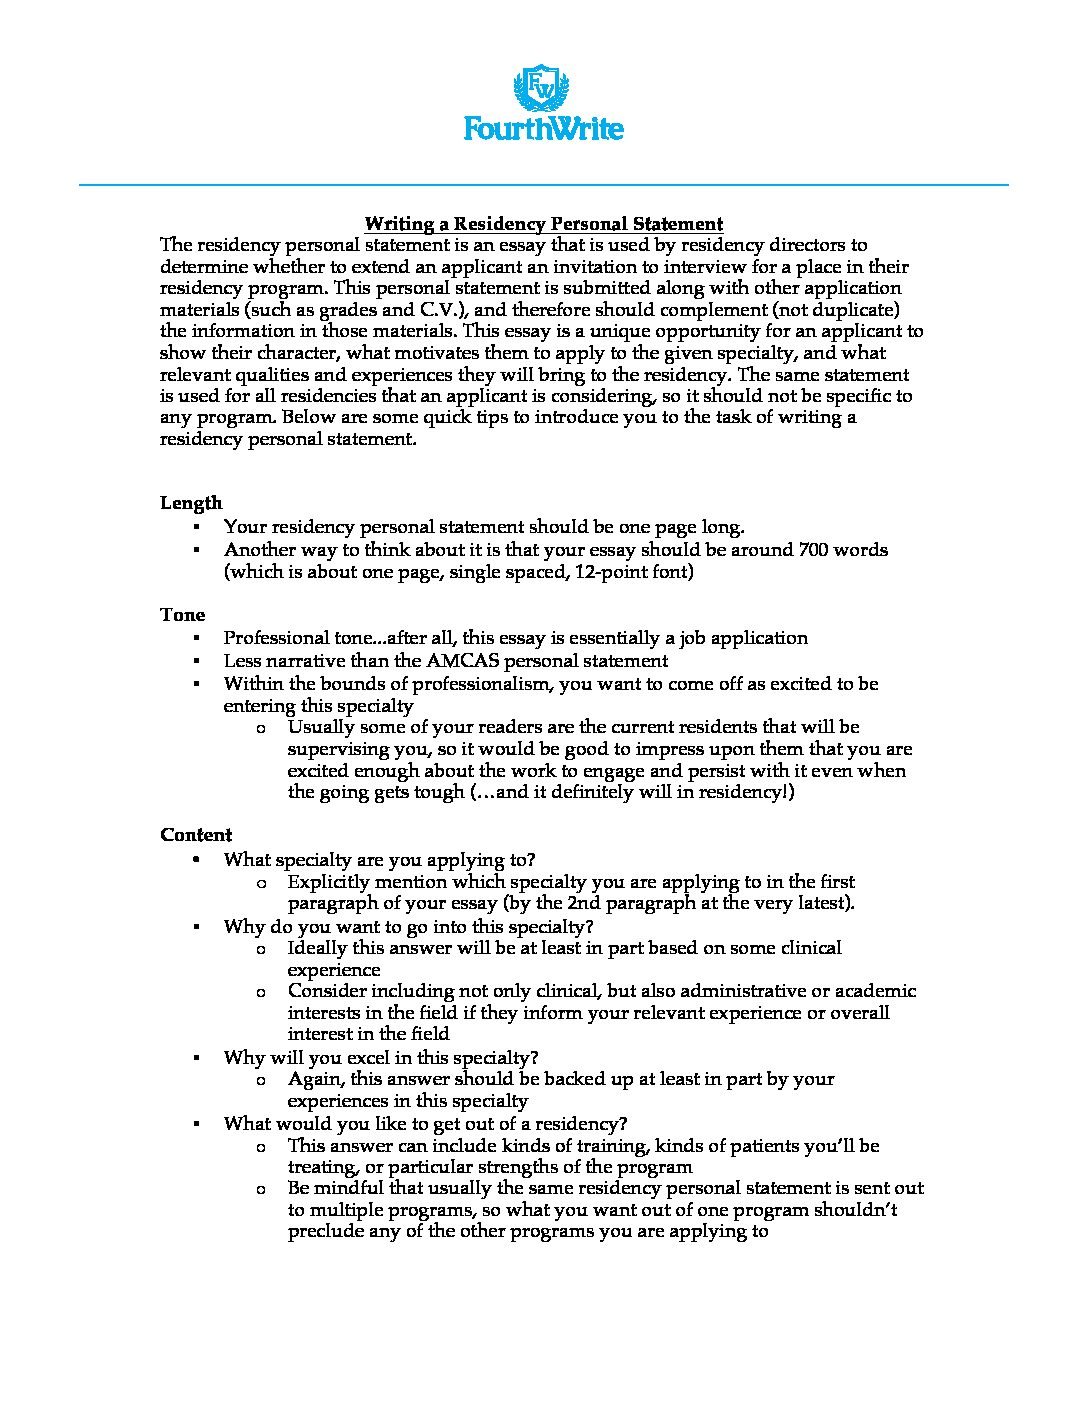 how to write personal statement for residency